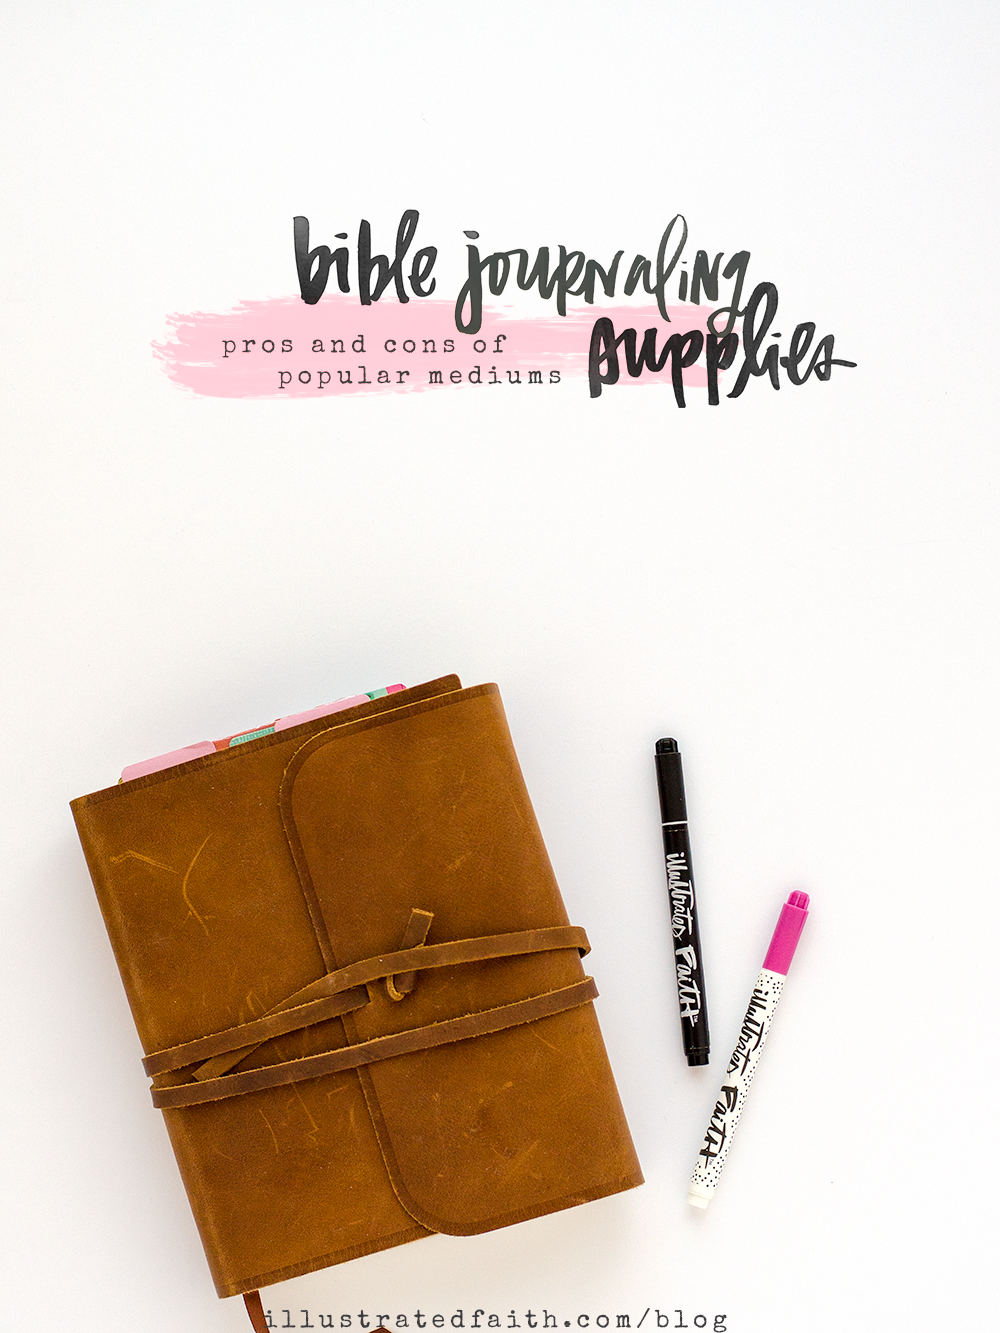 Bible Journaling Supplies - Pros and Cons of Popular Mediums used... gesso, matte medium, stamp ink. acrylic paint, watercolor, gelatos, neocolor II, journaling pens, markers, mists, spray inks, etc...